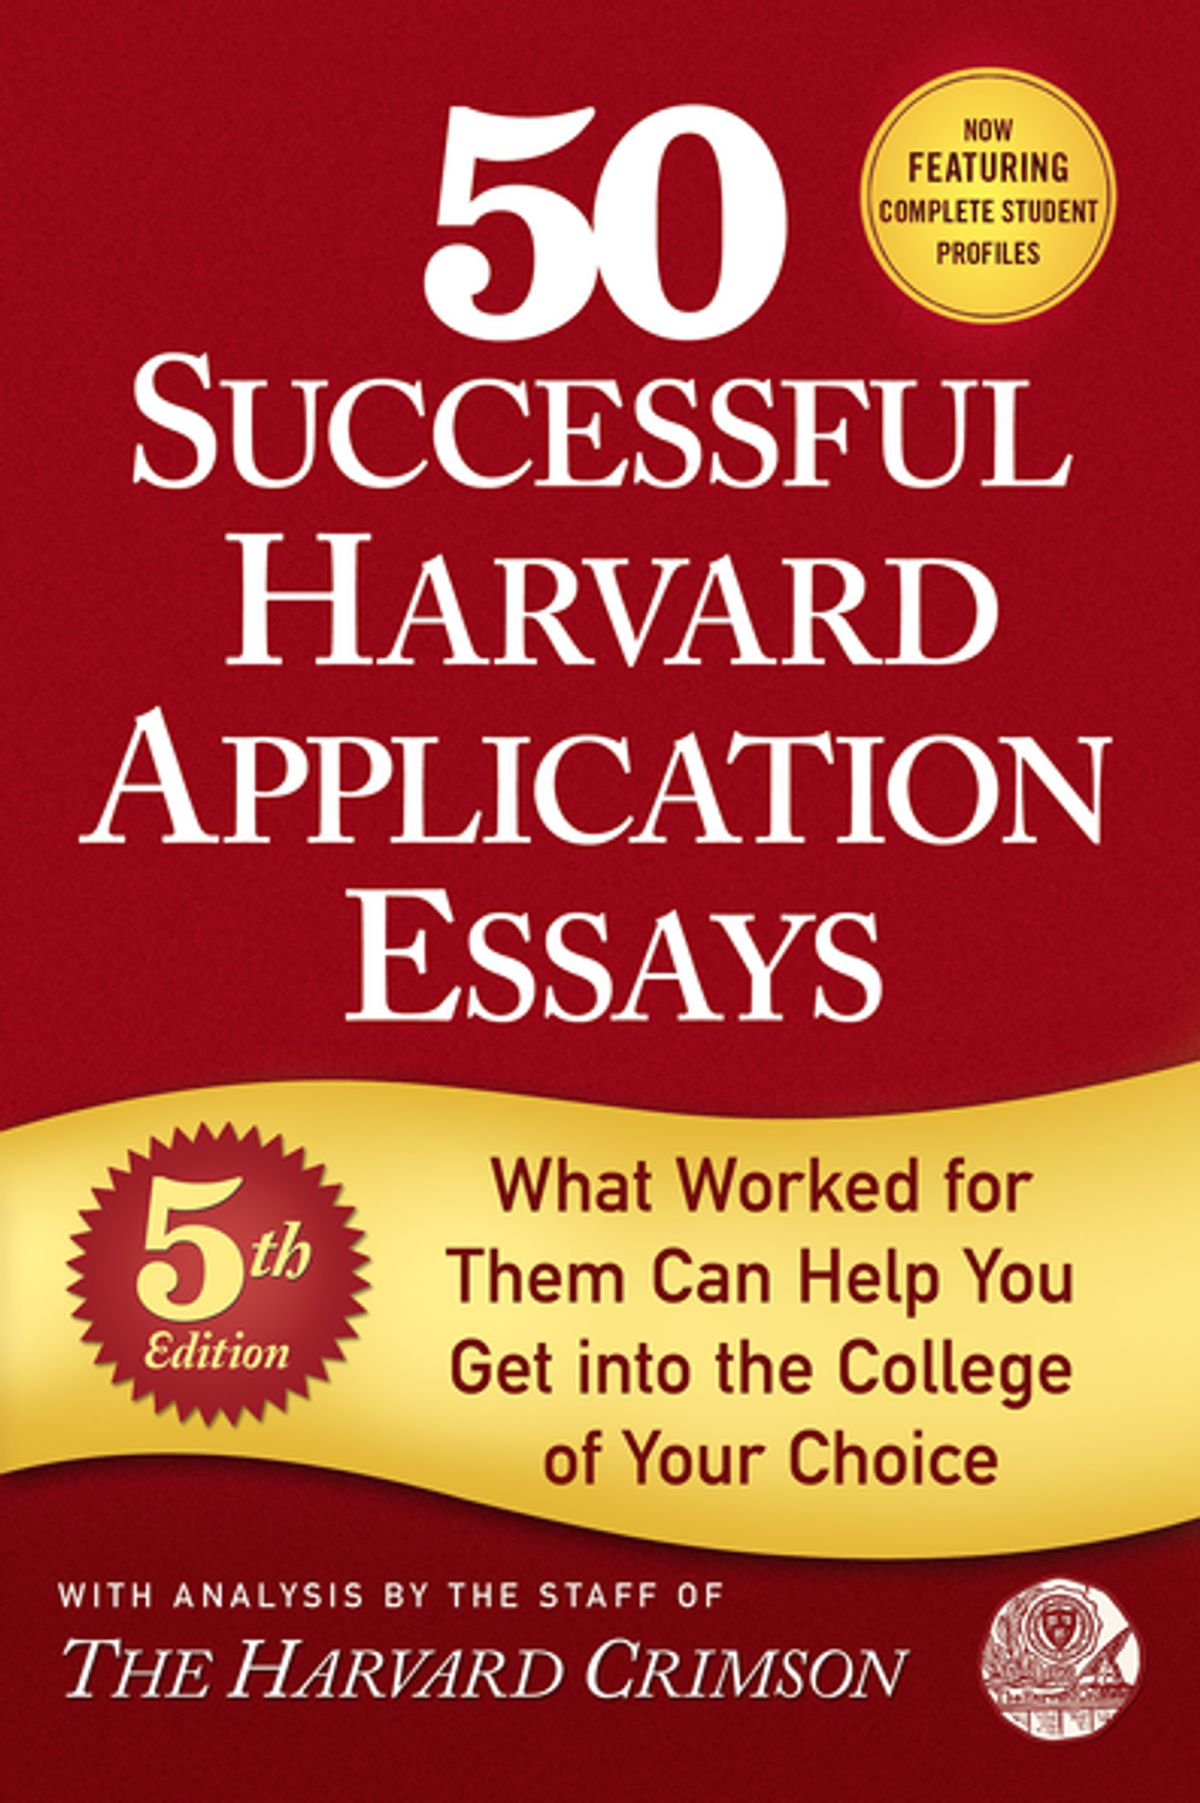 020 Essays 5th Edition Successful Harvard Application Essay Imposing 50 Fifty Great Pdf Free A Portable Anthology Ebook Full